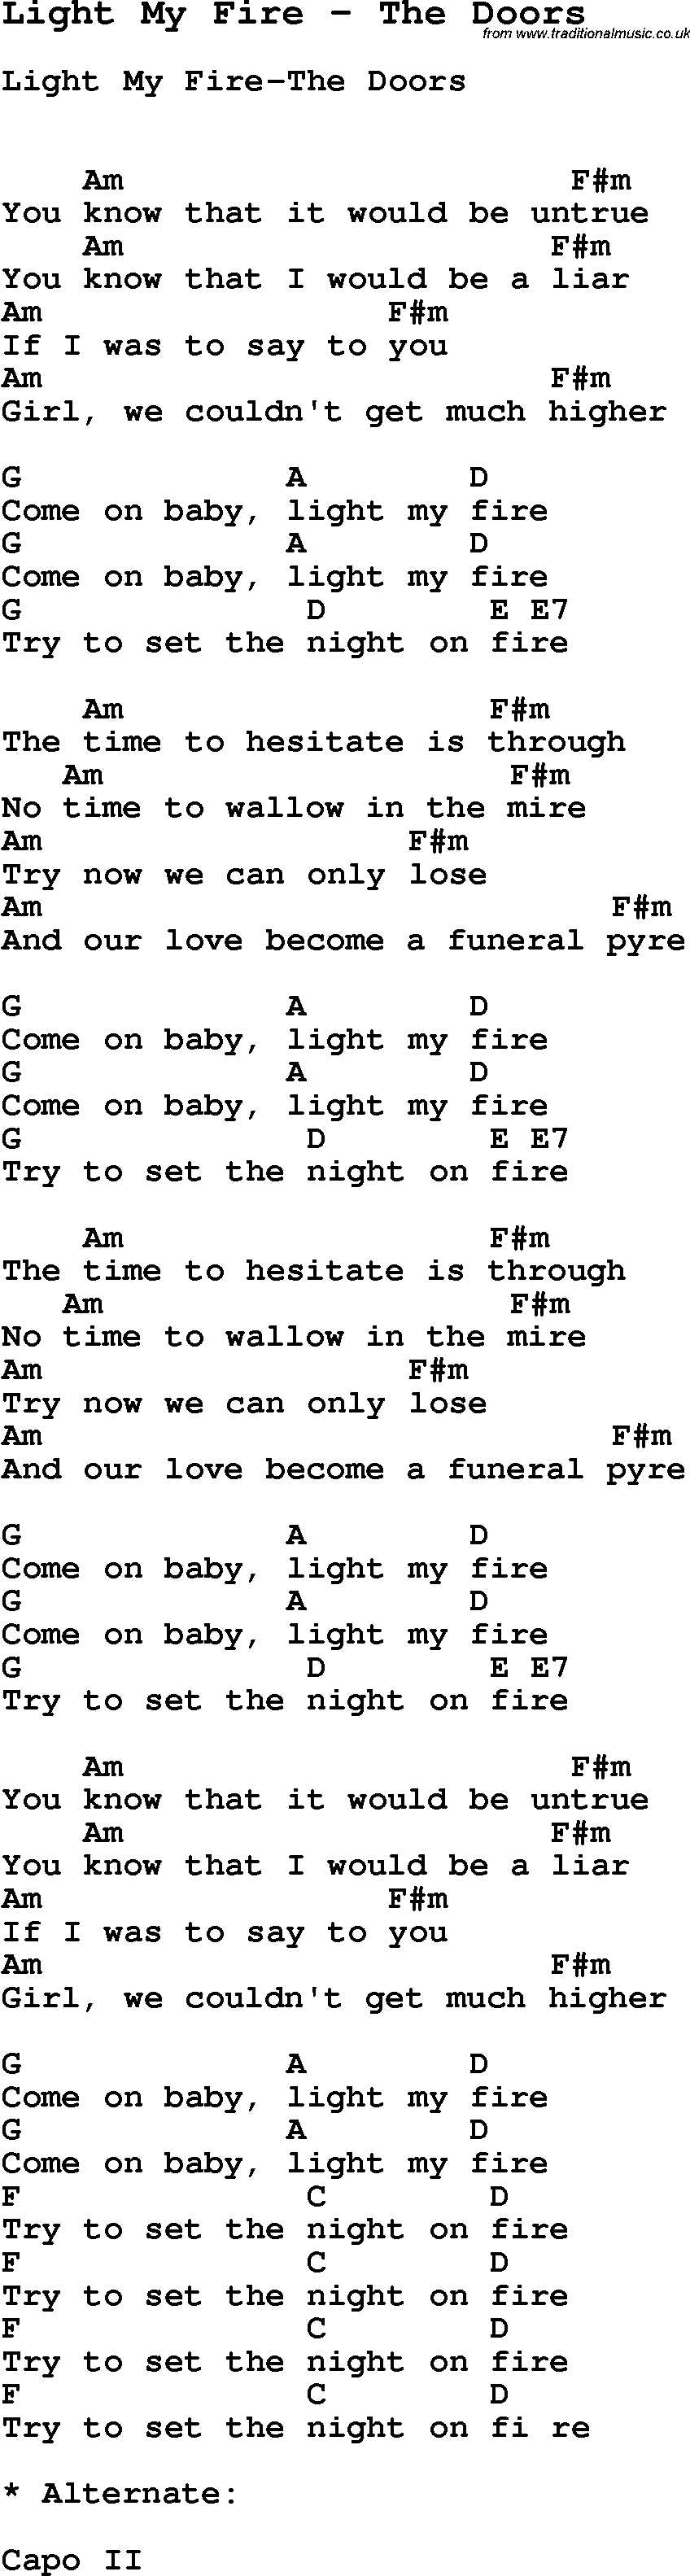 Song Light My Fire By The Doors With Lyrics For Vocal Performance